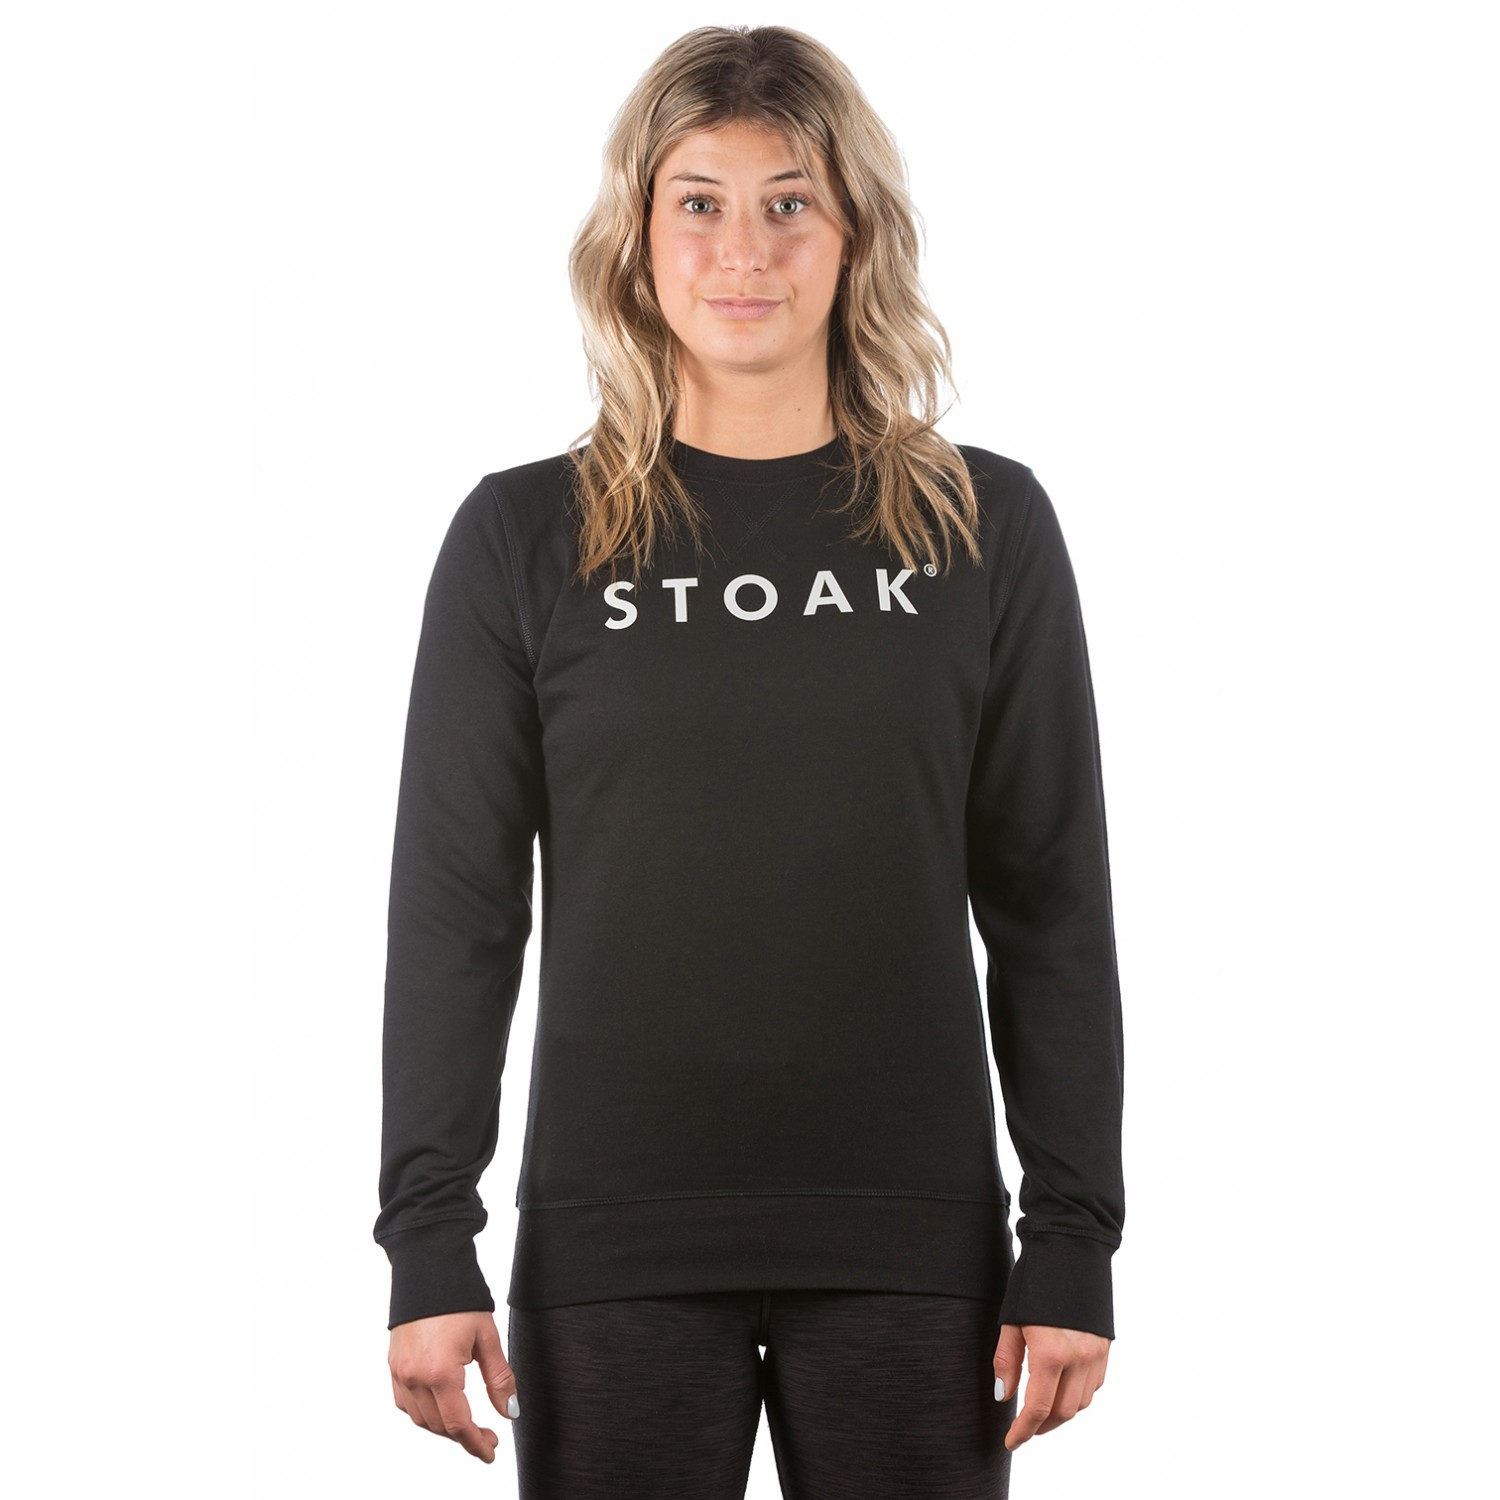 STOAK CARBON Crewneck